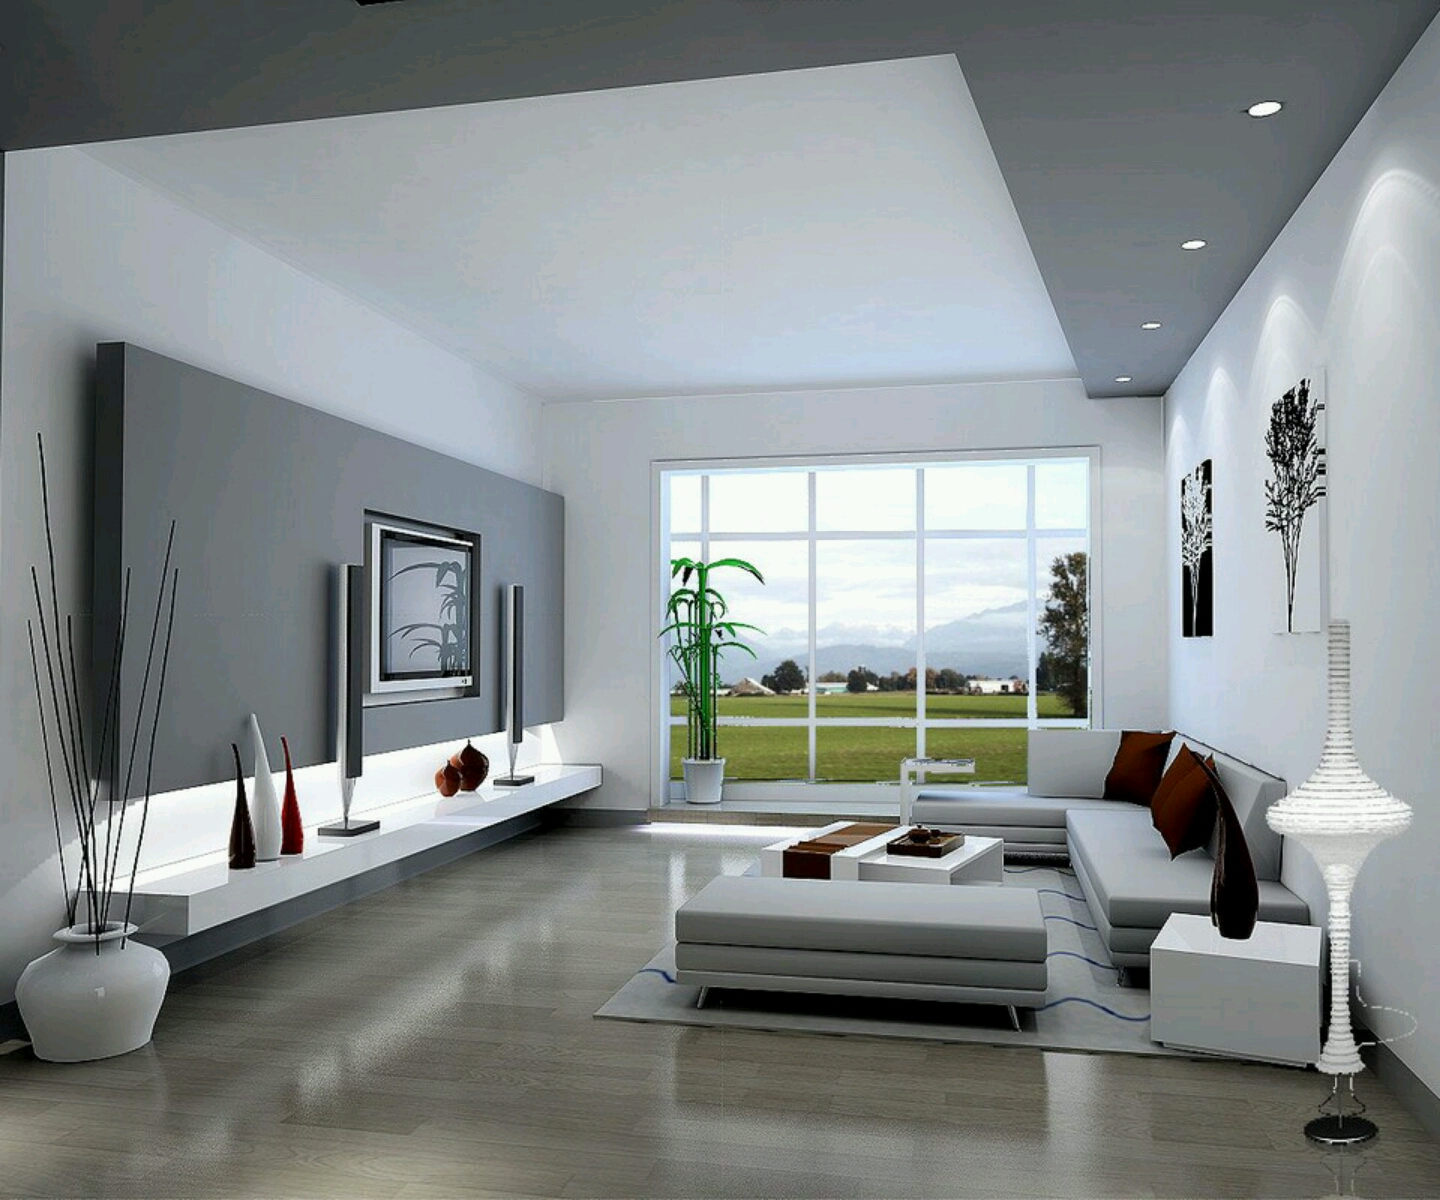 New home designs latest modern living rooms interior - Interior design ideas contemporary living room decor ...